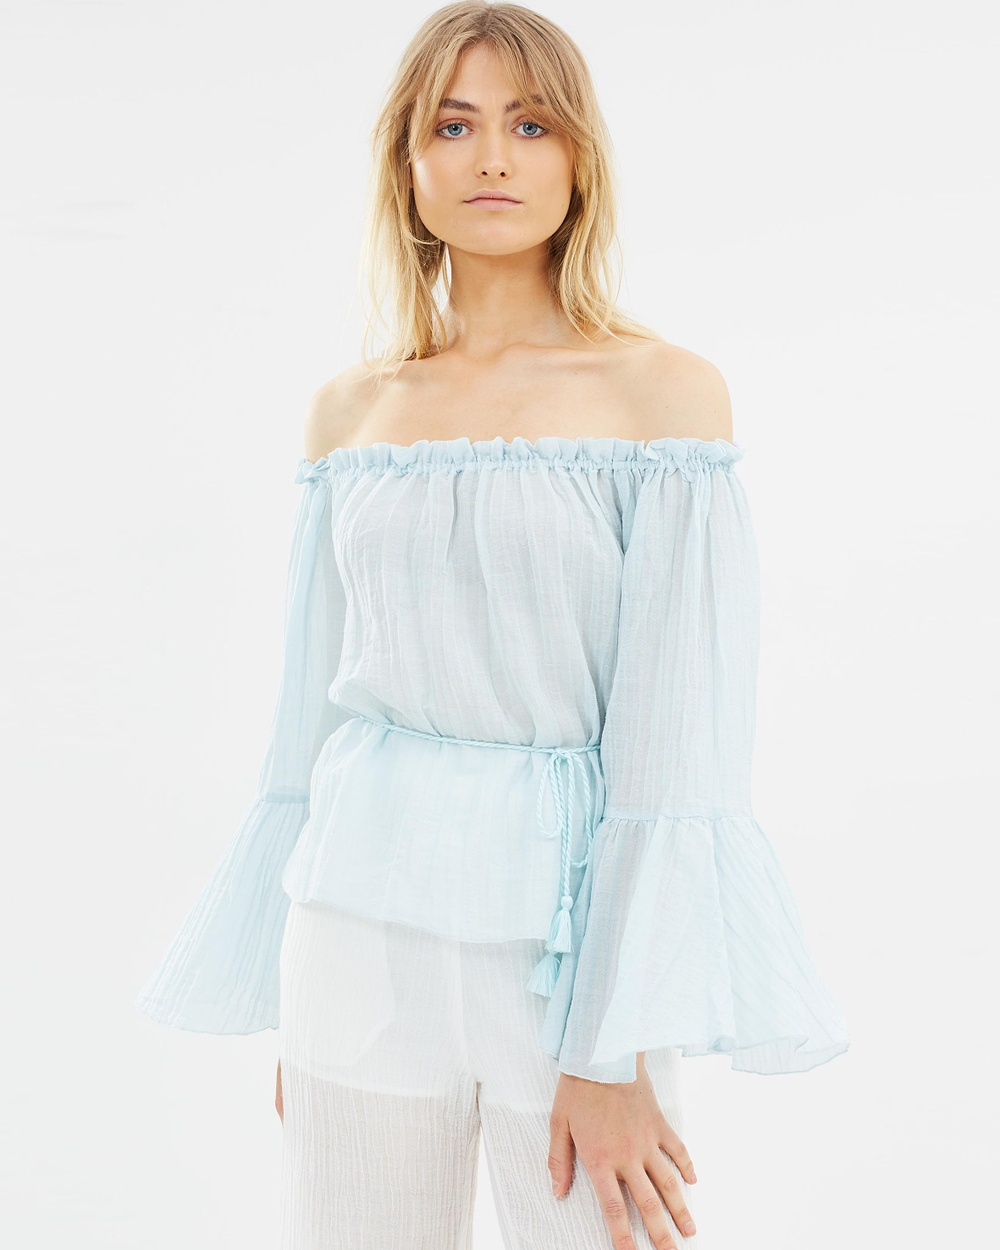 Hansen & Gretel Meg Top Tops Baby Blue Meg Top